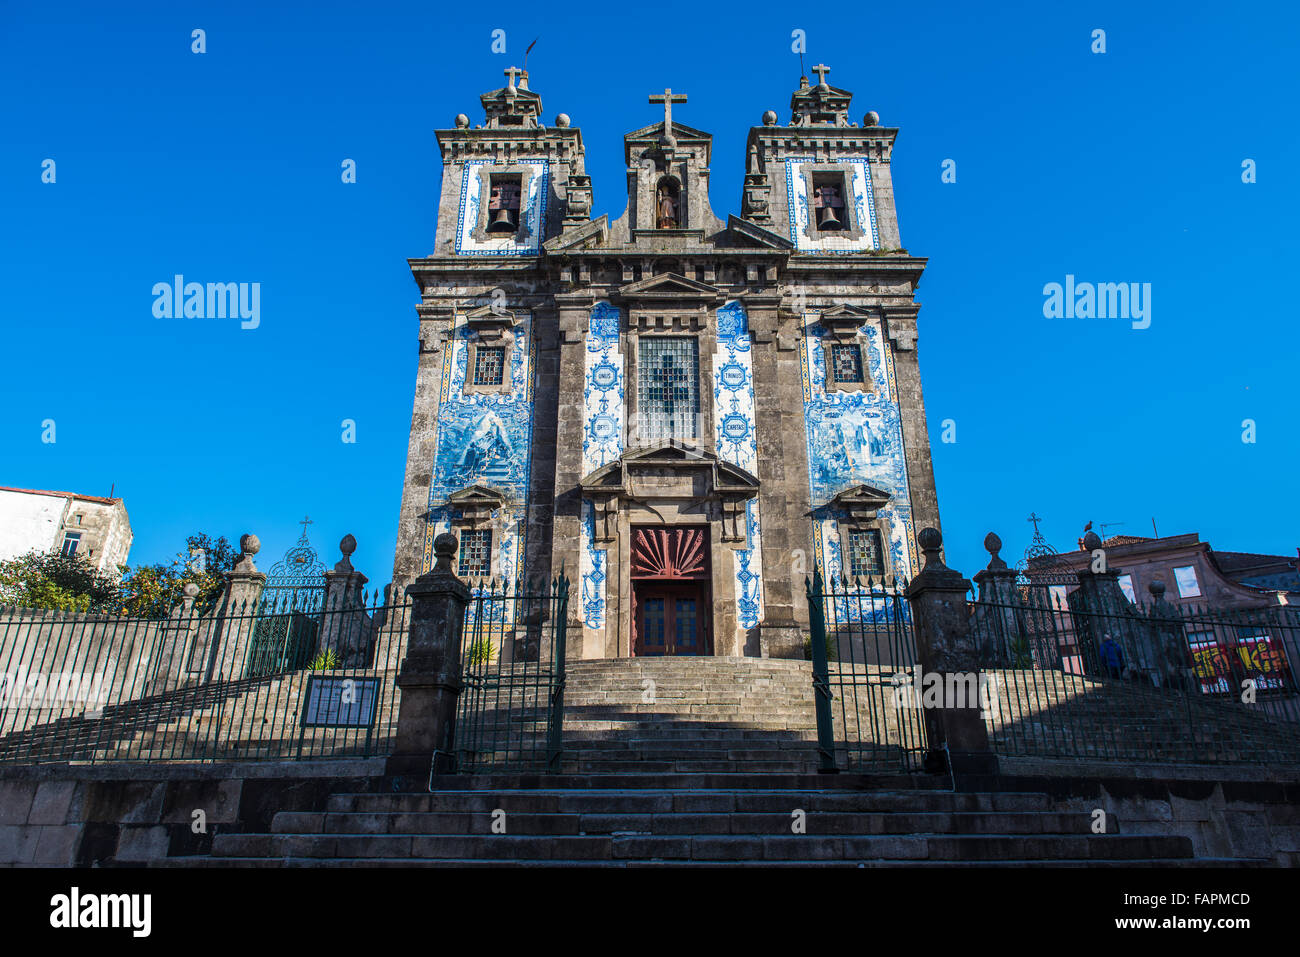 The Church of Santo Ildefonso in Porto, built in the XVII century - Stock Image